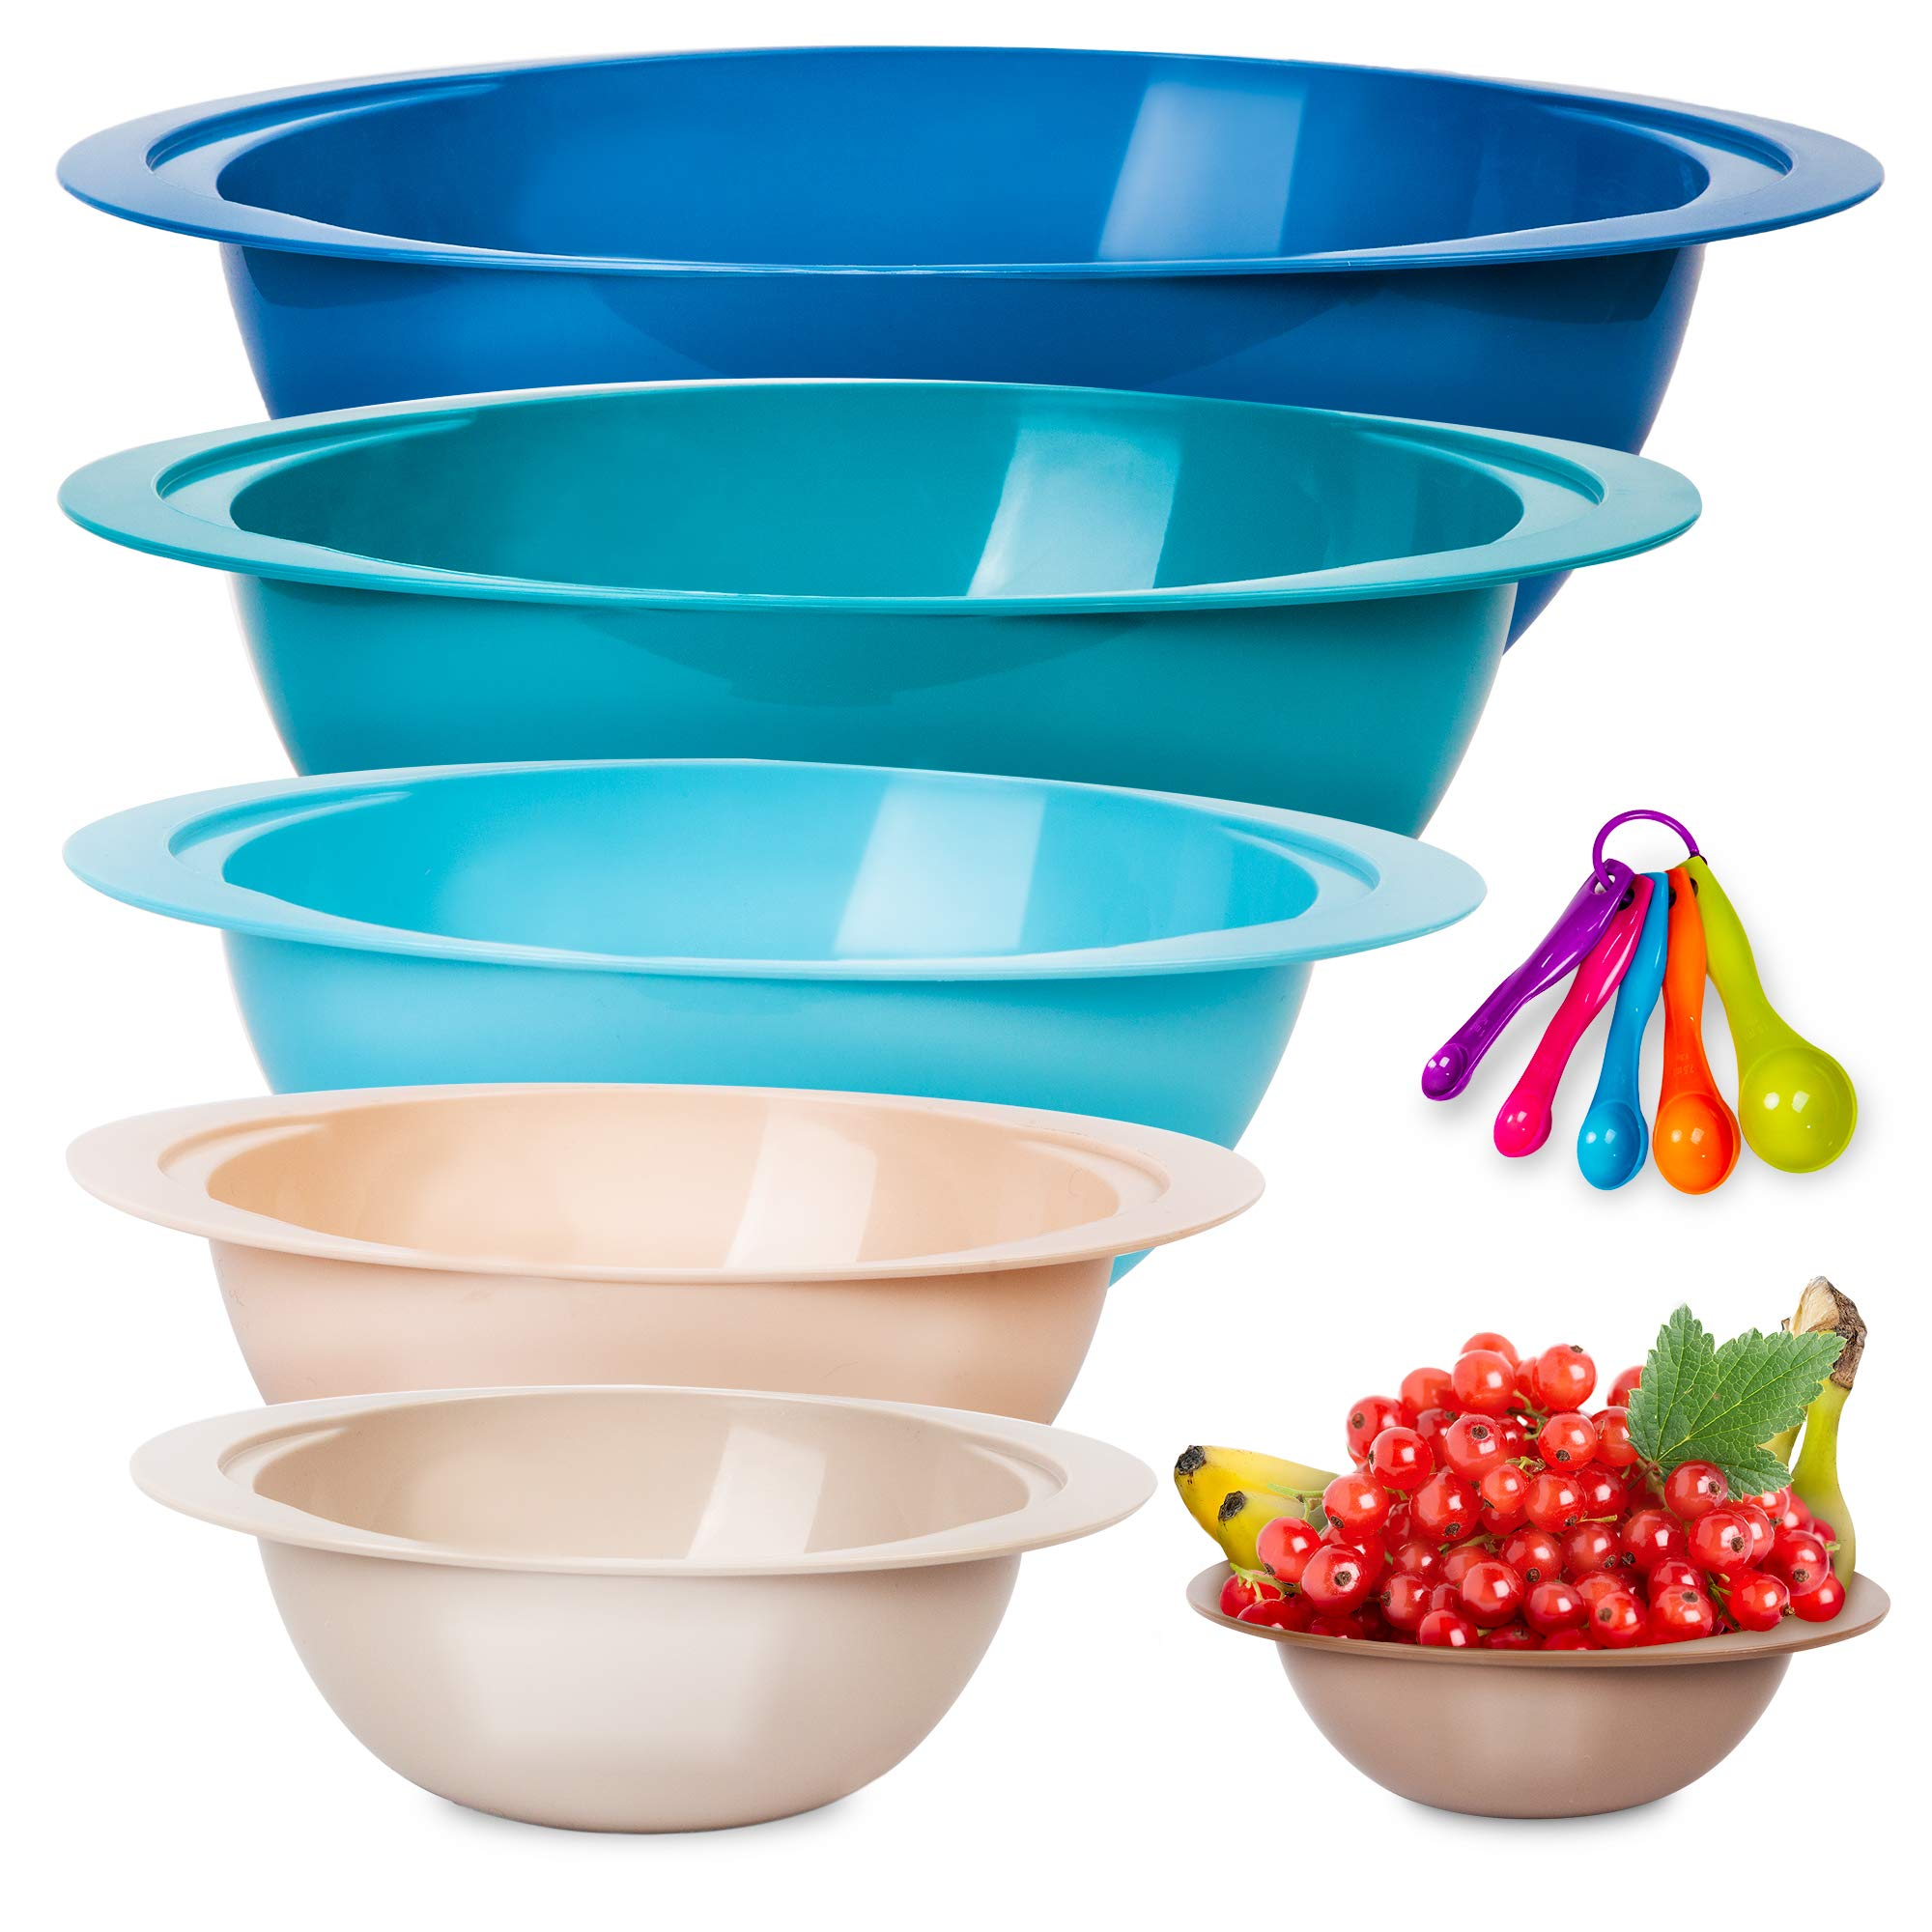 MONKA Plastic Mixing Bowl Set – 6 Stackable Nesting Bowls + 5 Measuring Spoons for Cooking & Baking – Small and Large Plastic Bowl Cooking Supplies for Serving, Popcorn, Salad, Meal Prep, More